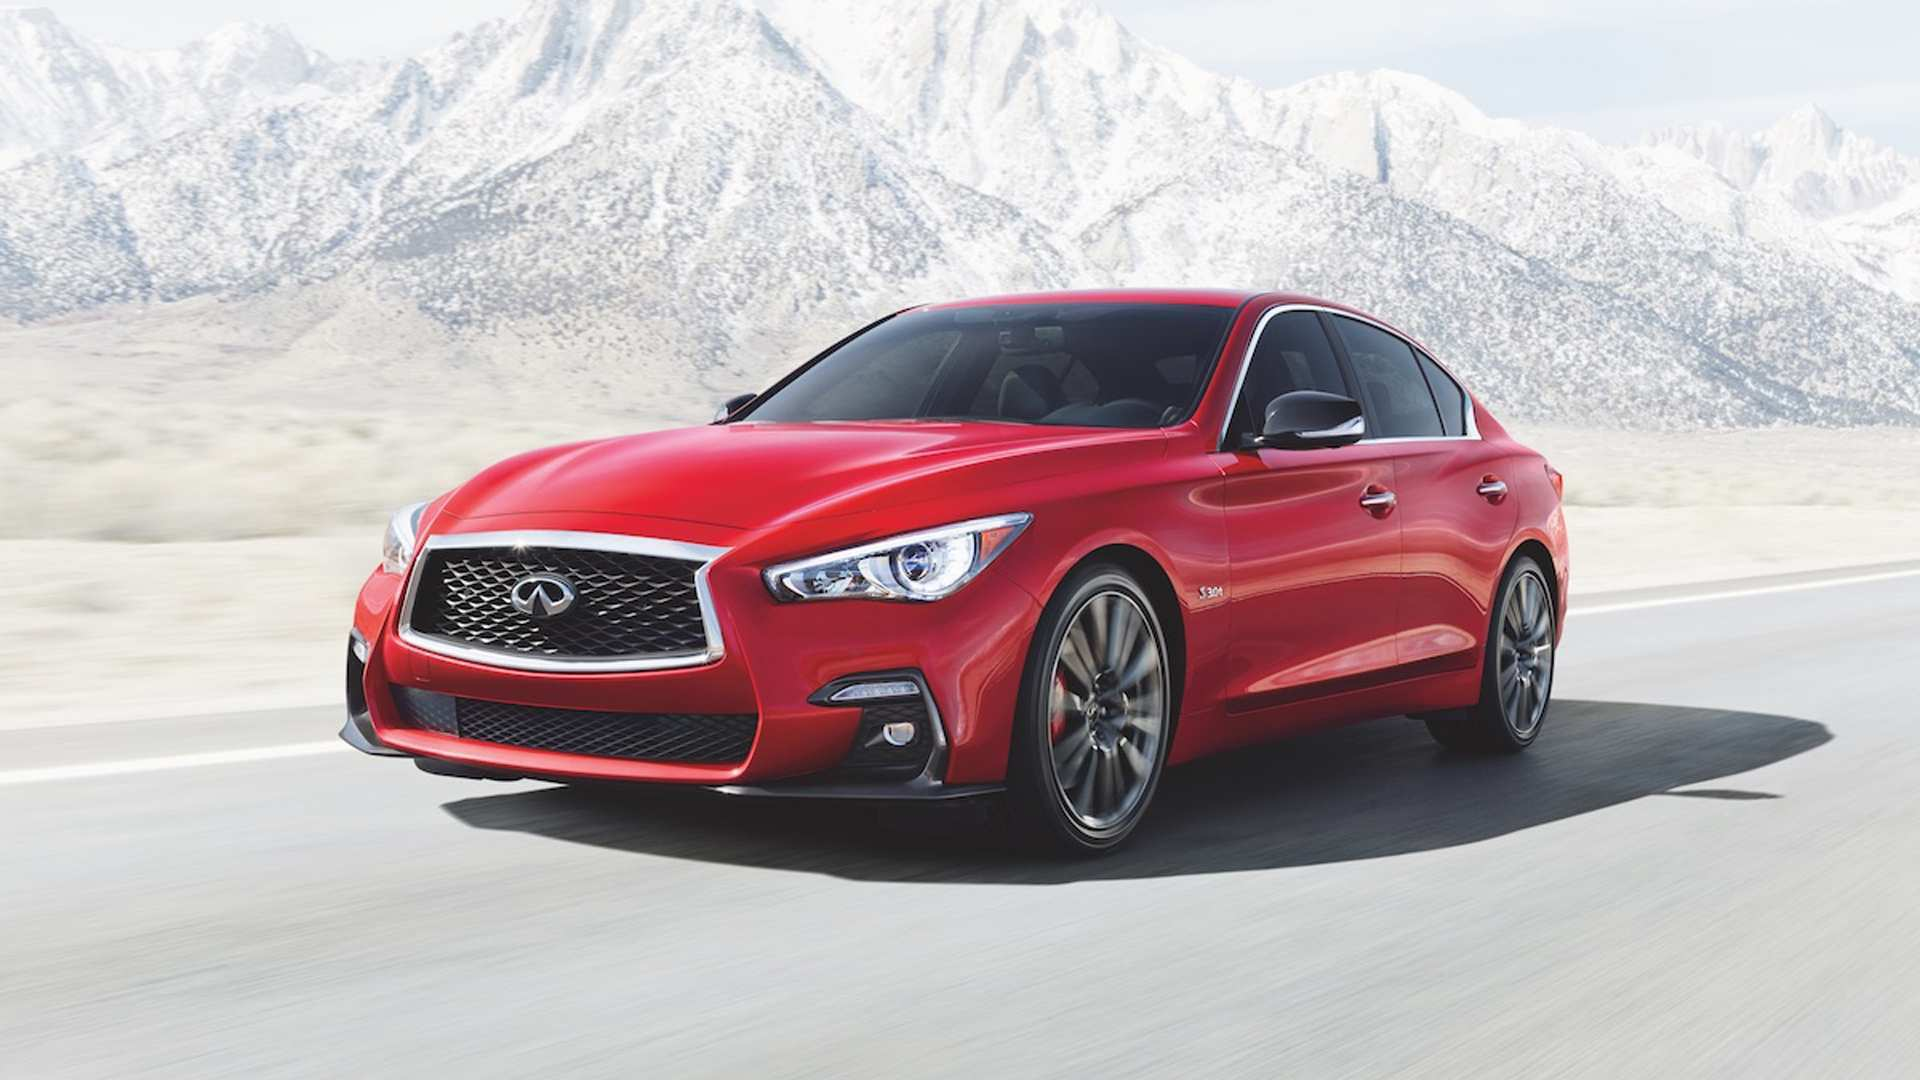 92 New 2020 Infiniti Q70 Specs And Review